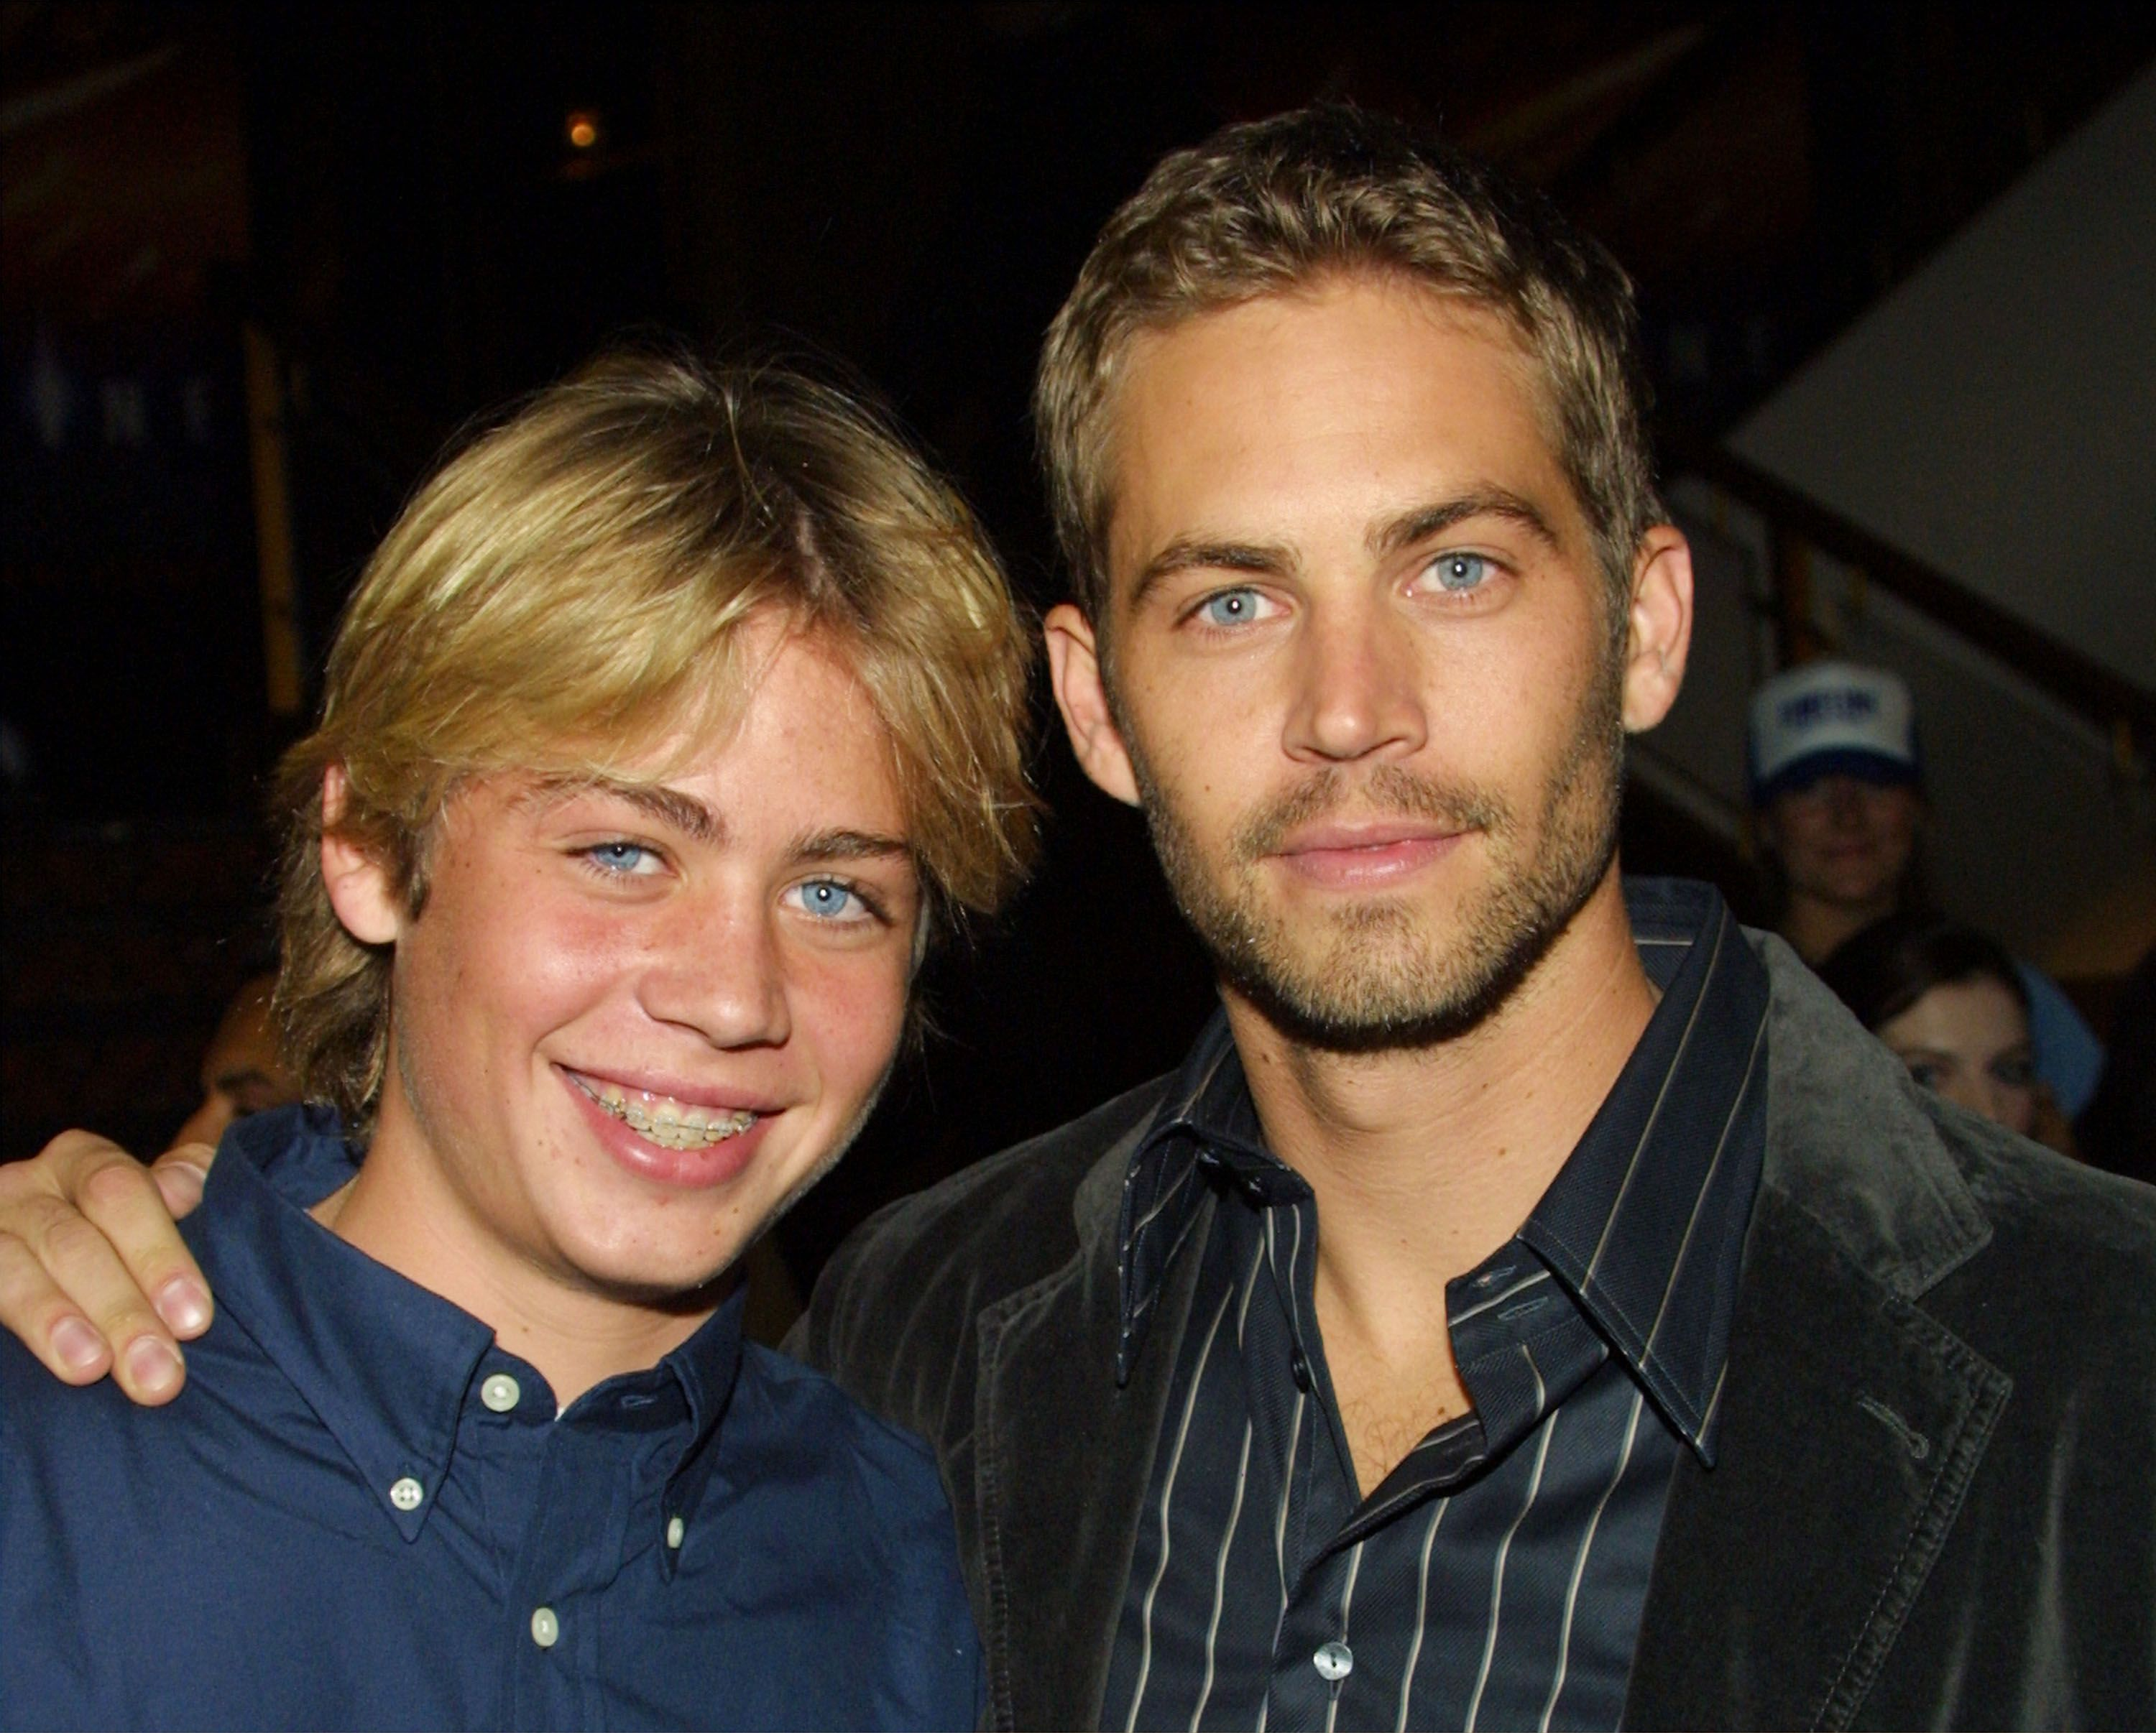 Paul walker s brother cody walker will complete his role in fast furious 7 do you like him